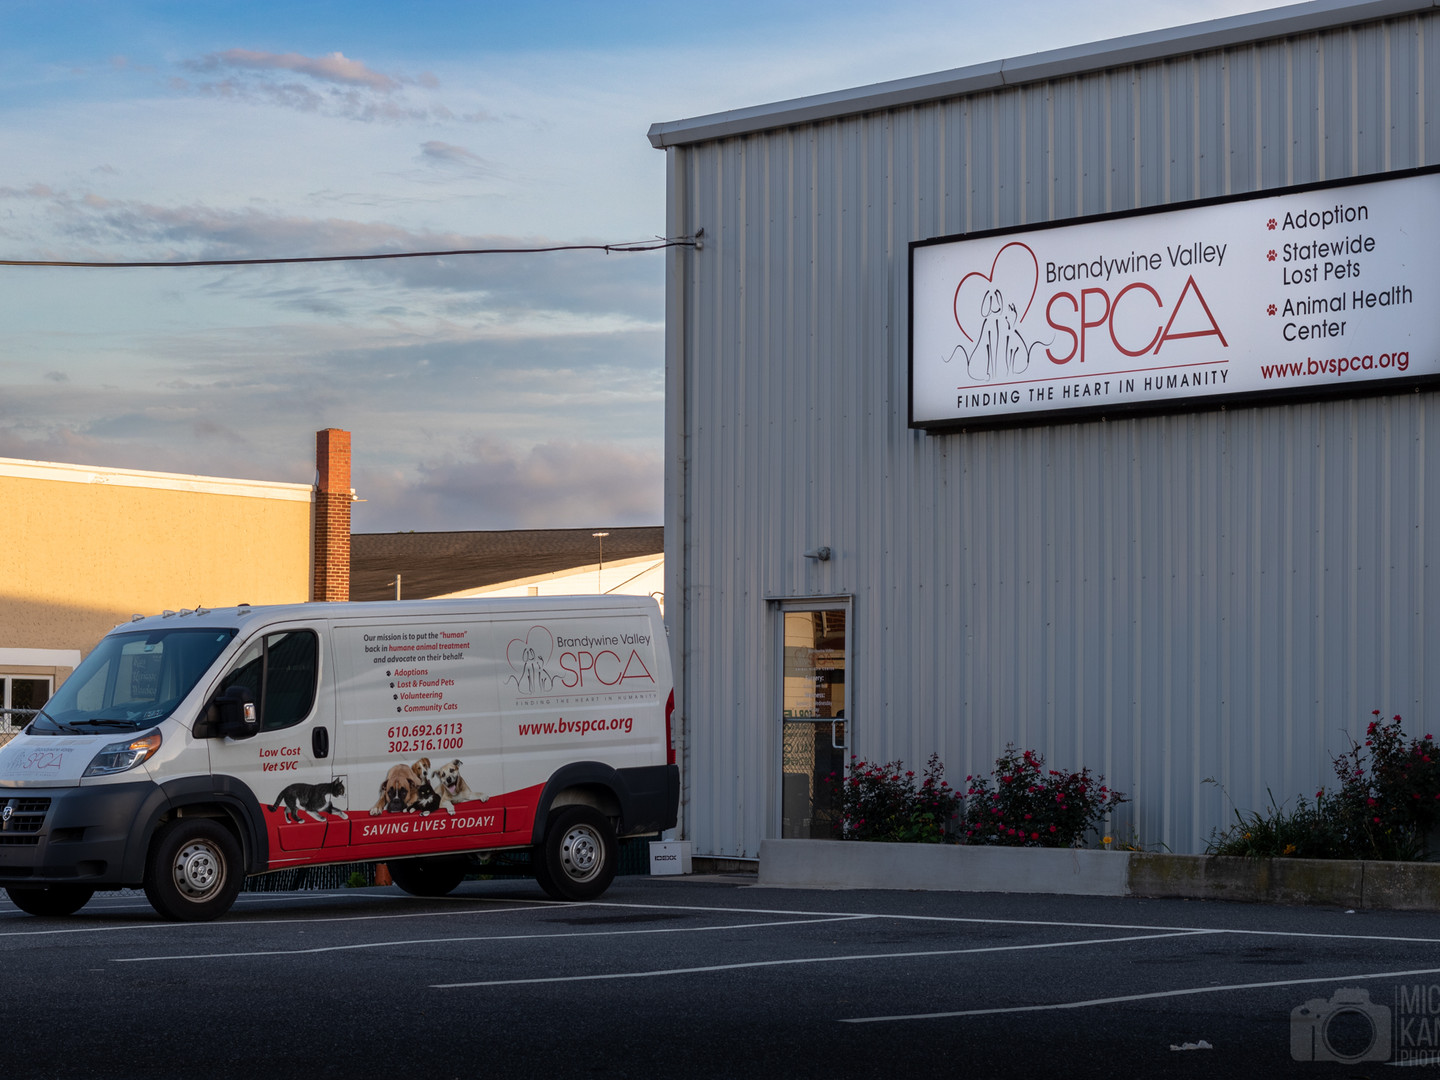 Truck Wrap and Outdoor Signage